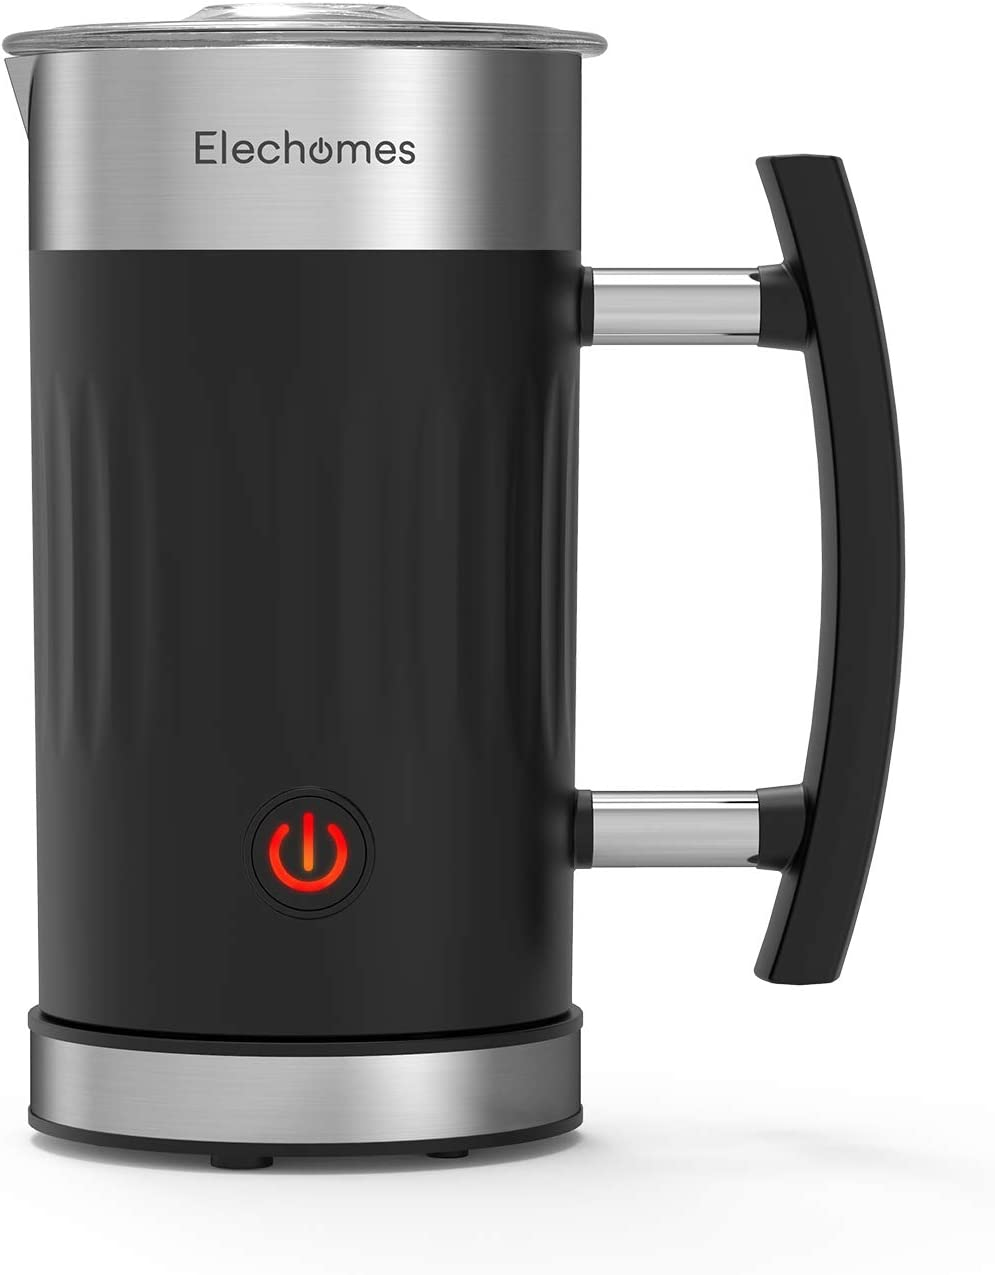 Elechomes Milk Frother, 5 in 1 Electric Milk Steamer with Hot & Cold Milk Functionality, 10.1oz Foam Maker for Coffee, Hot Chocolates, Latte, and Cappuccino, Non-Stick Inner Design for Easy Clean, Fast Frothing